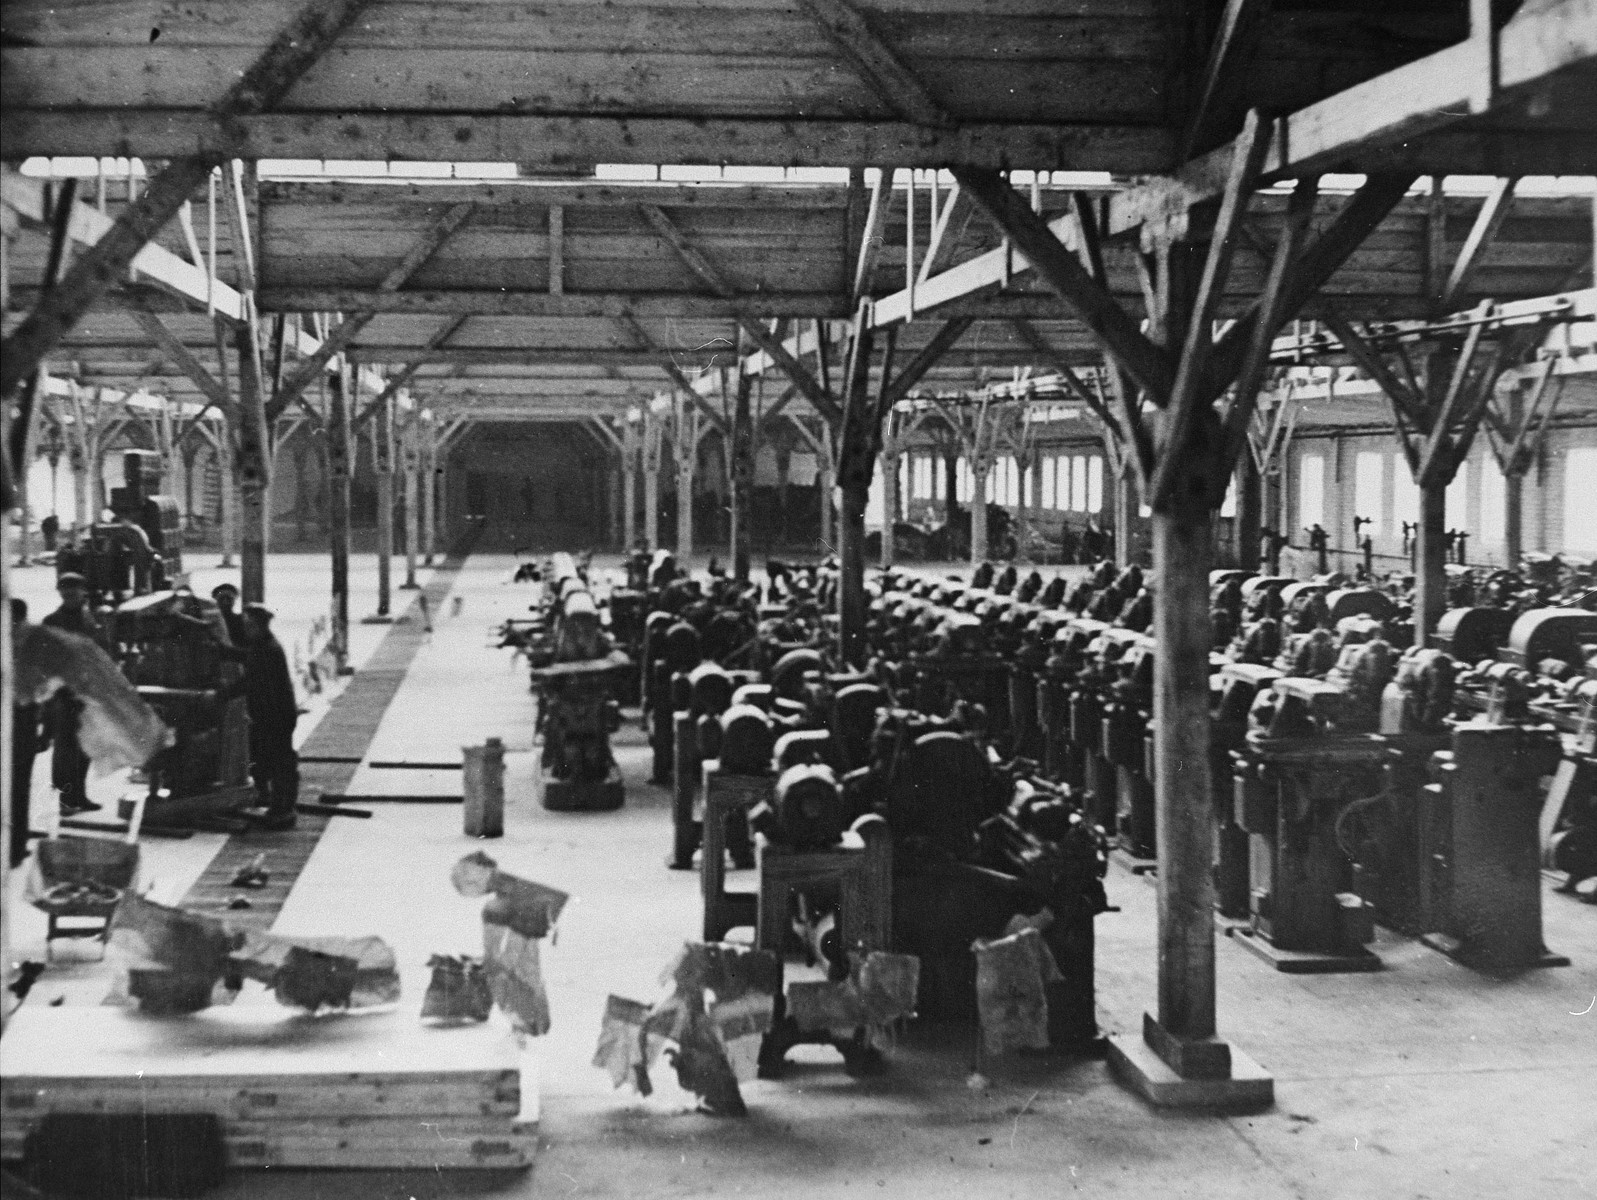 Prisoners at forced labor on the assembly line of the Gustloff Werke II munitions plant in the Buchenwald concentration camp.